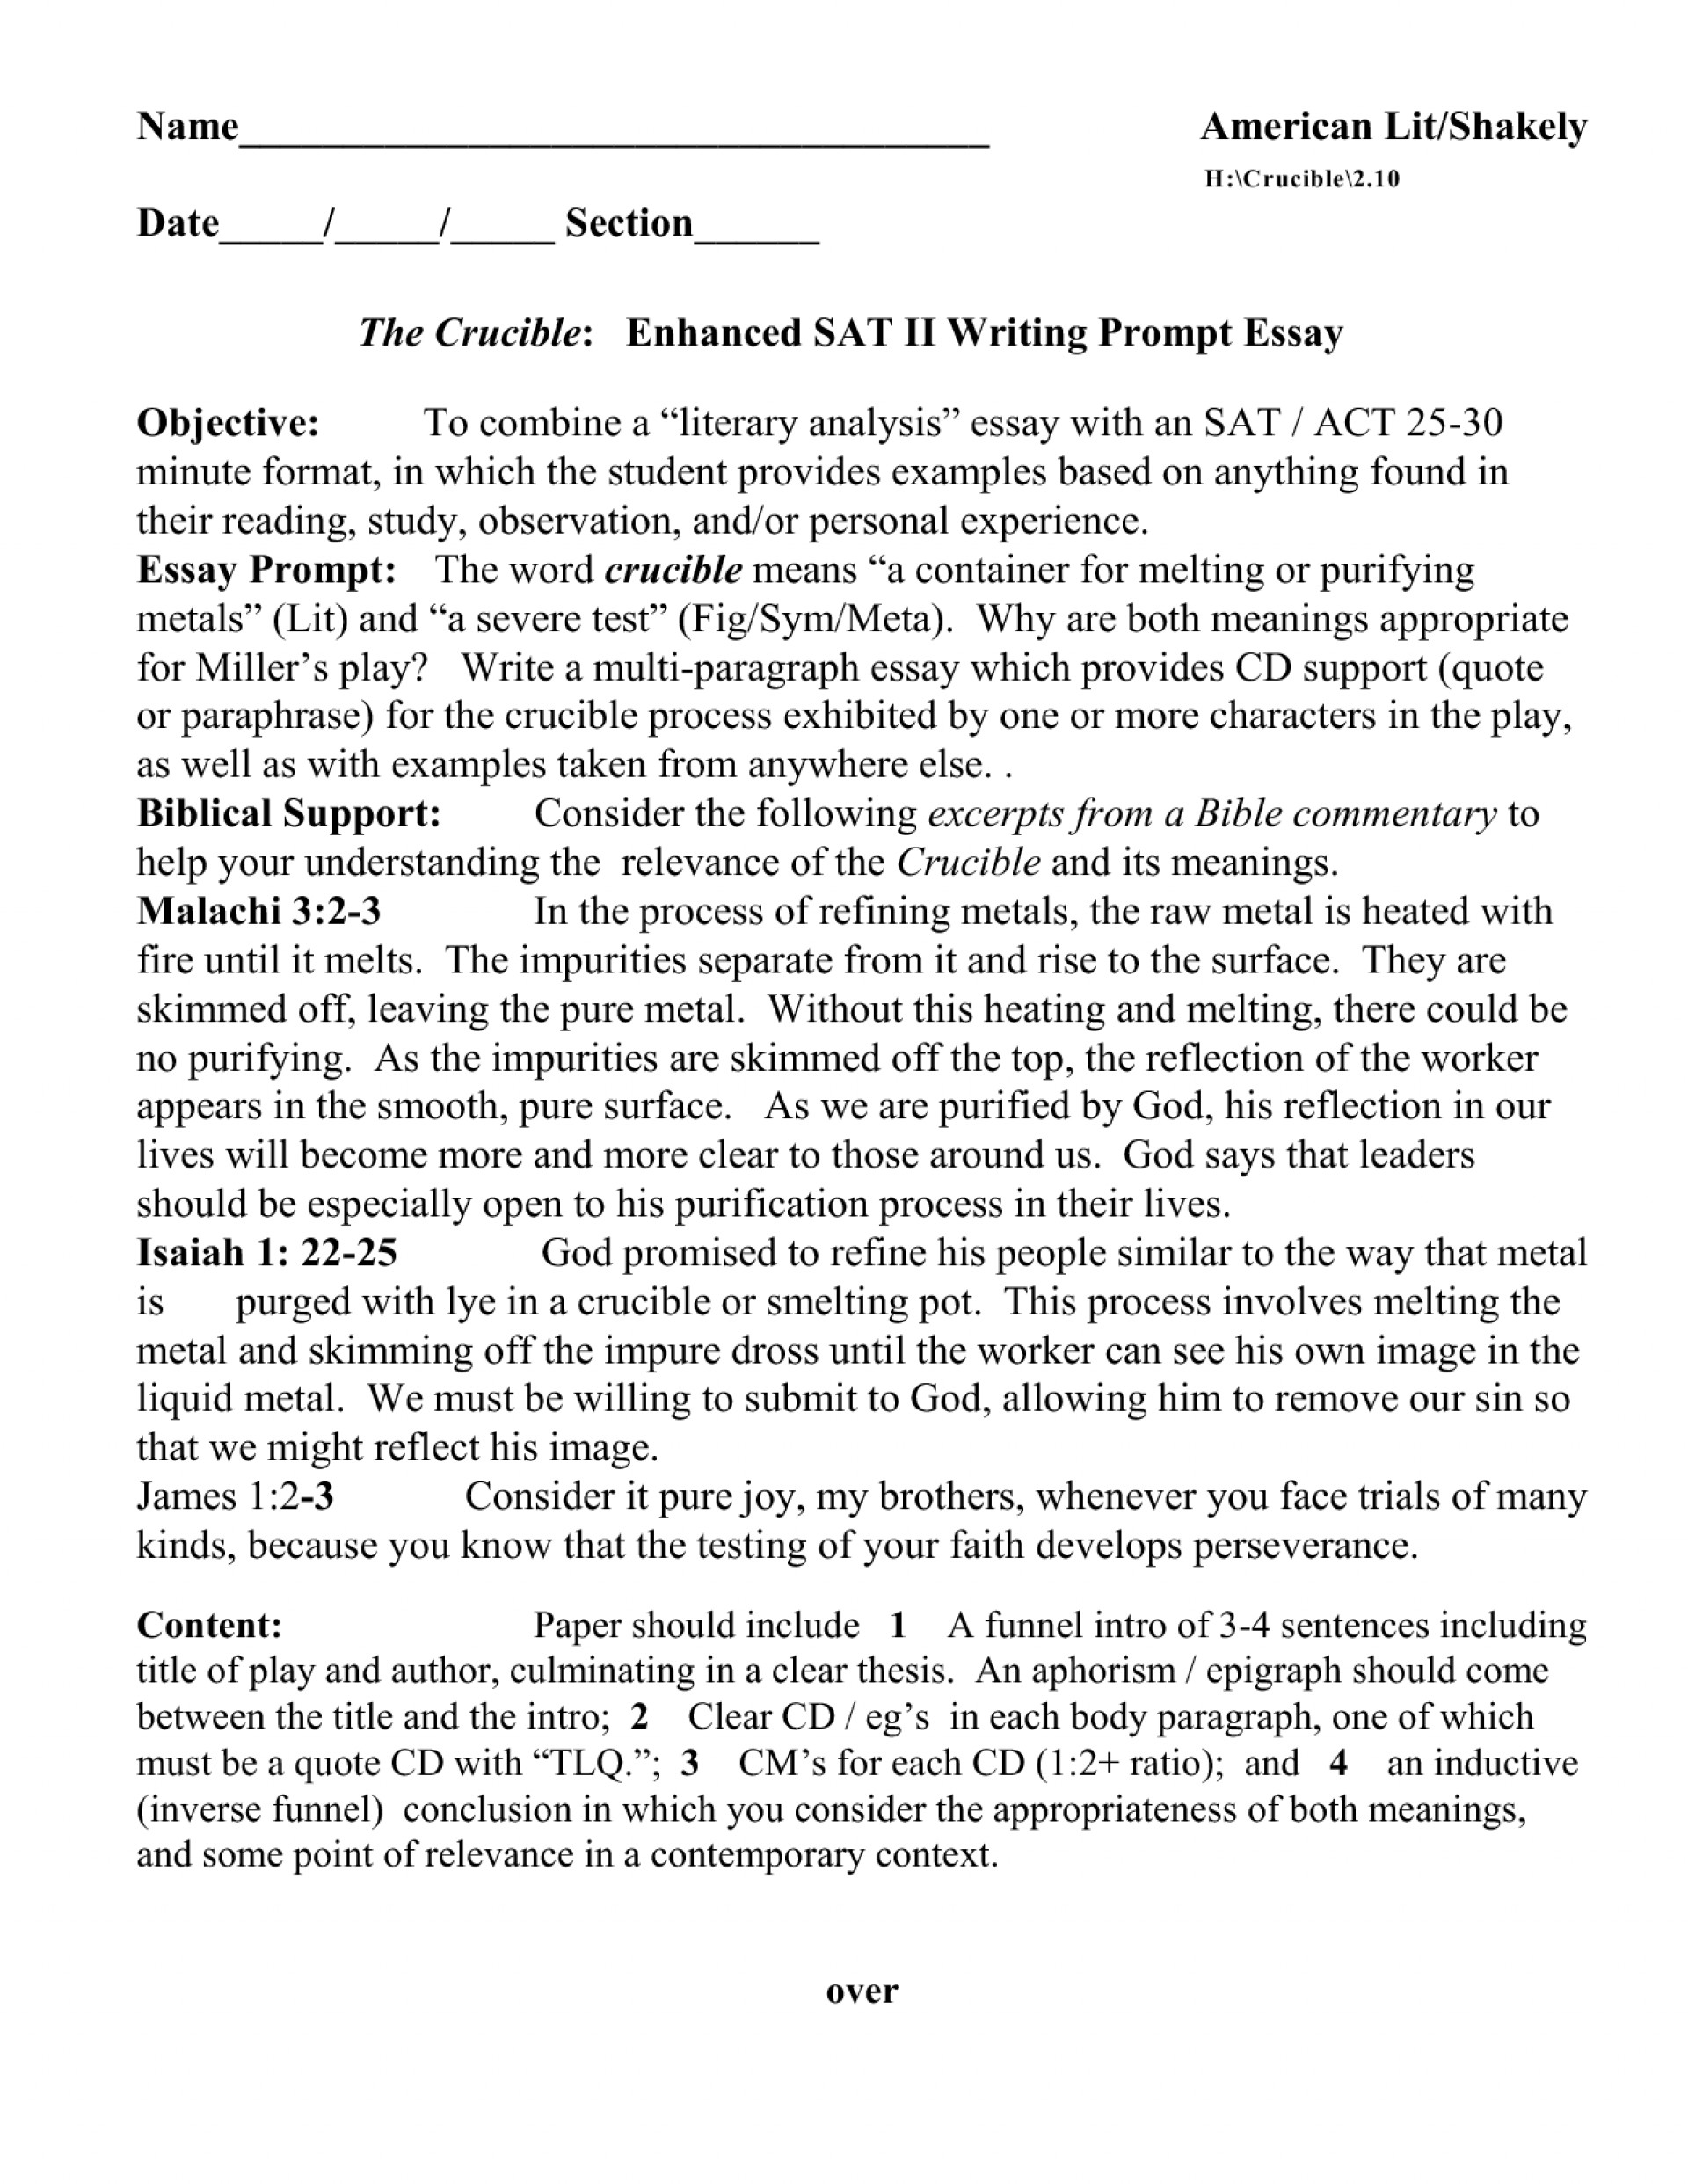 005 Sat Essay Quotes Quotesgram Is There An On The L Sample Astounding Prompts And Responses Pdf 1920